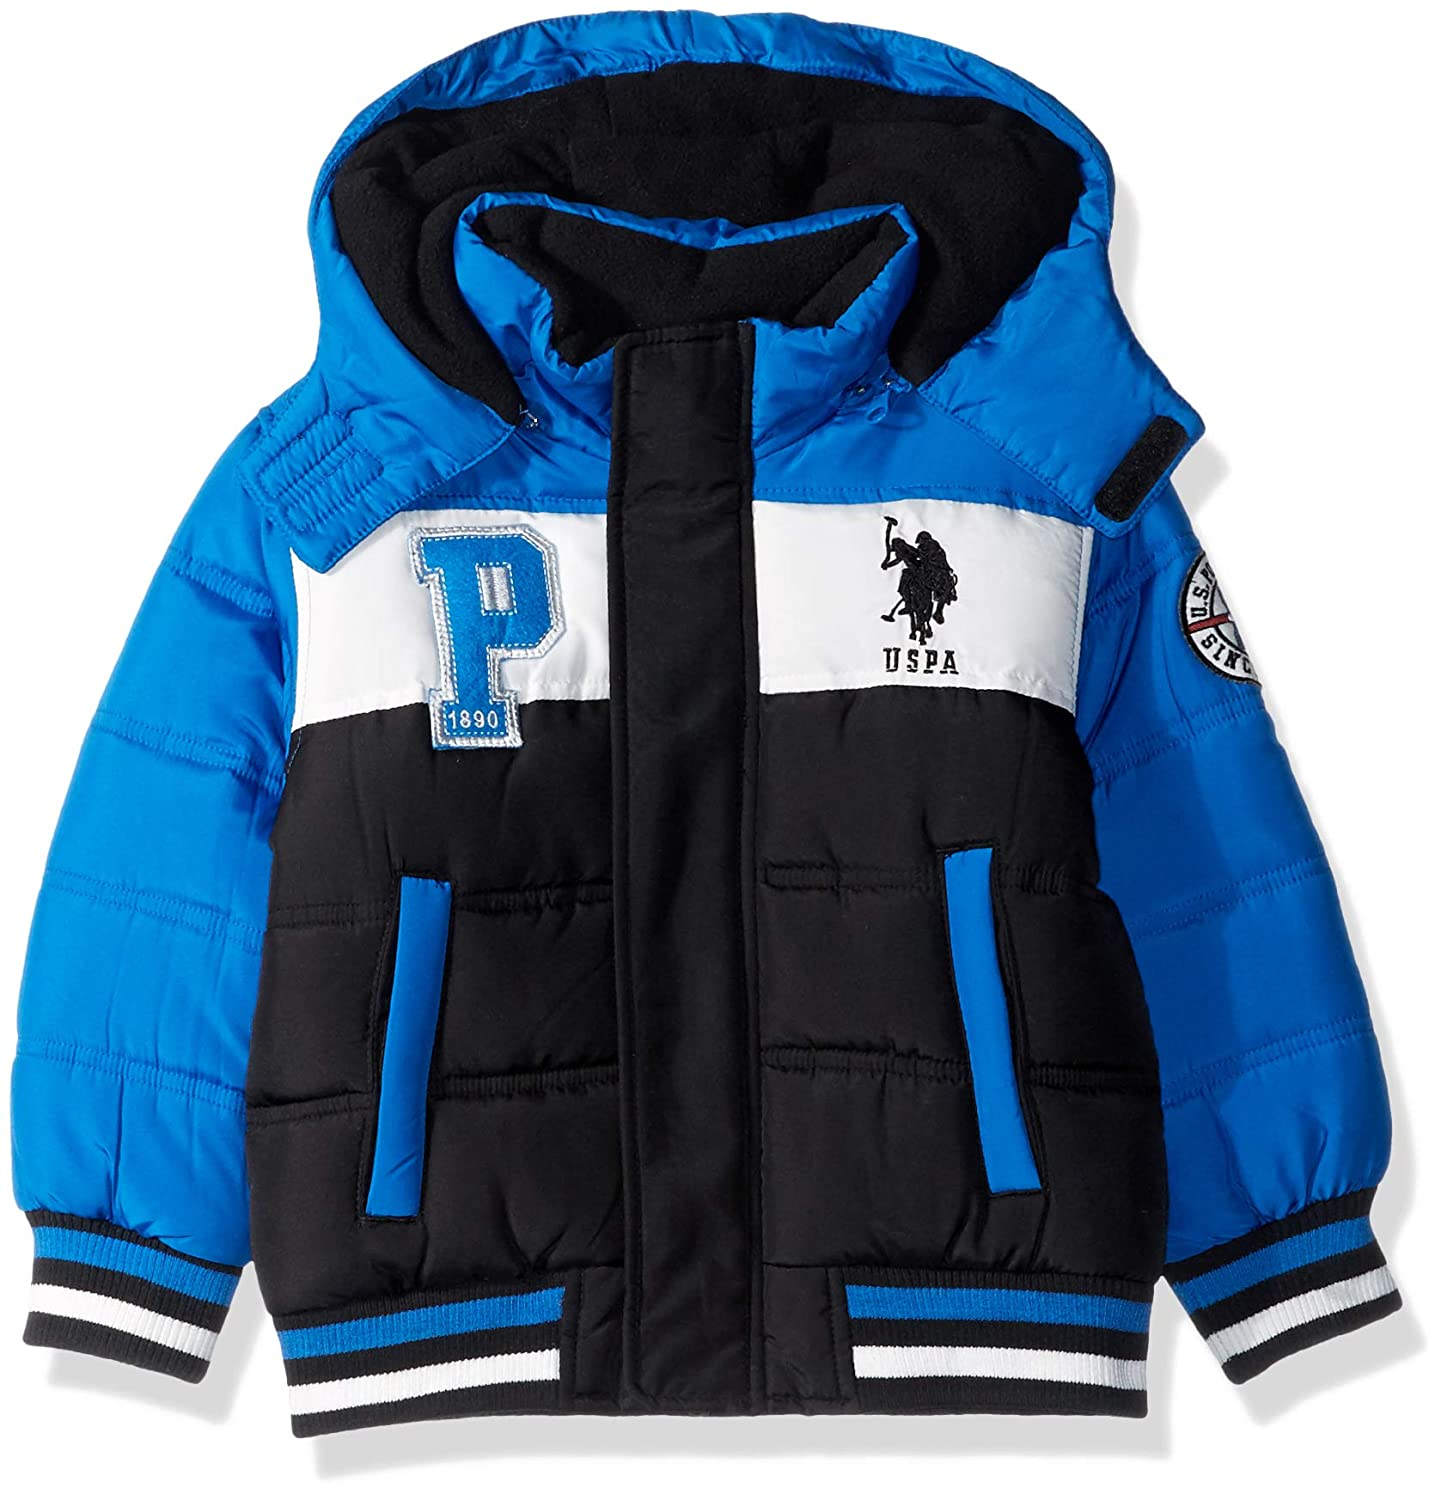 U.S. Polo Assn. Boys' Bubble Jacket with Rib Knit Cuffs